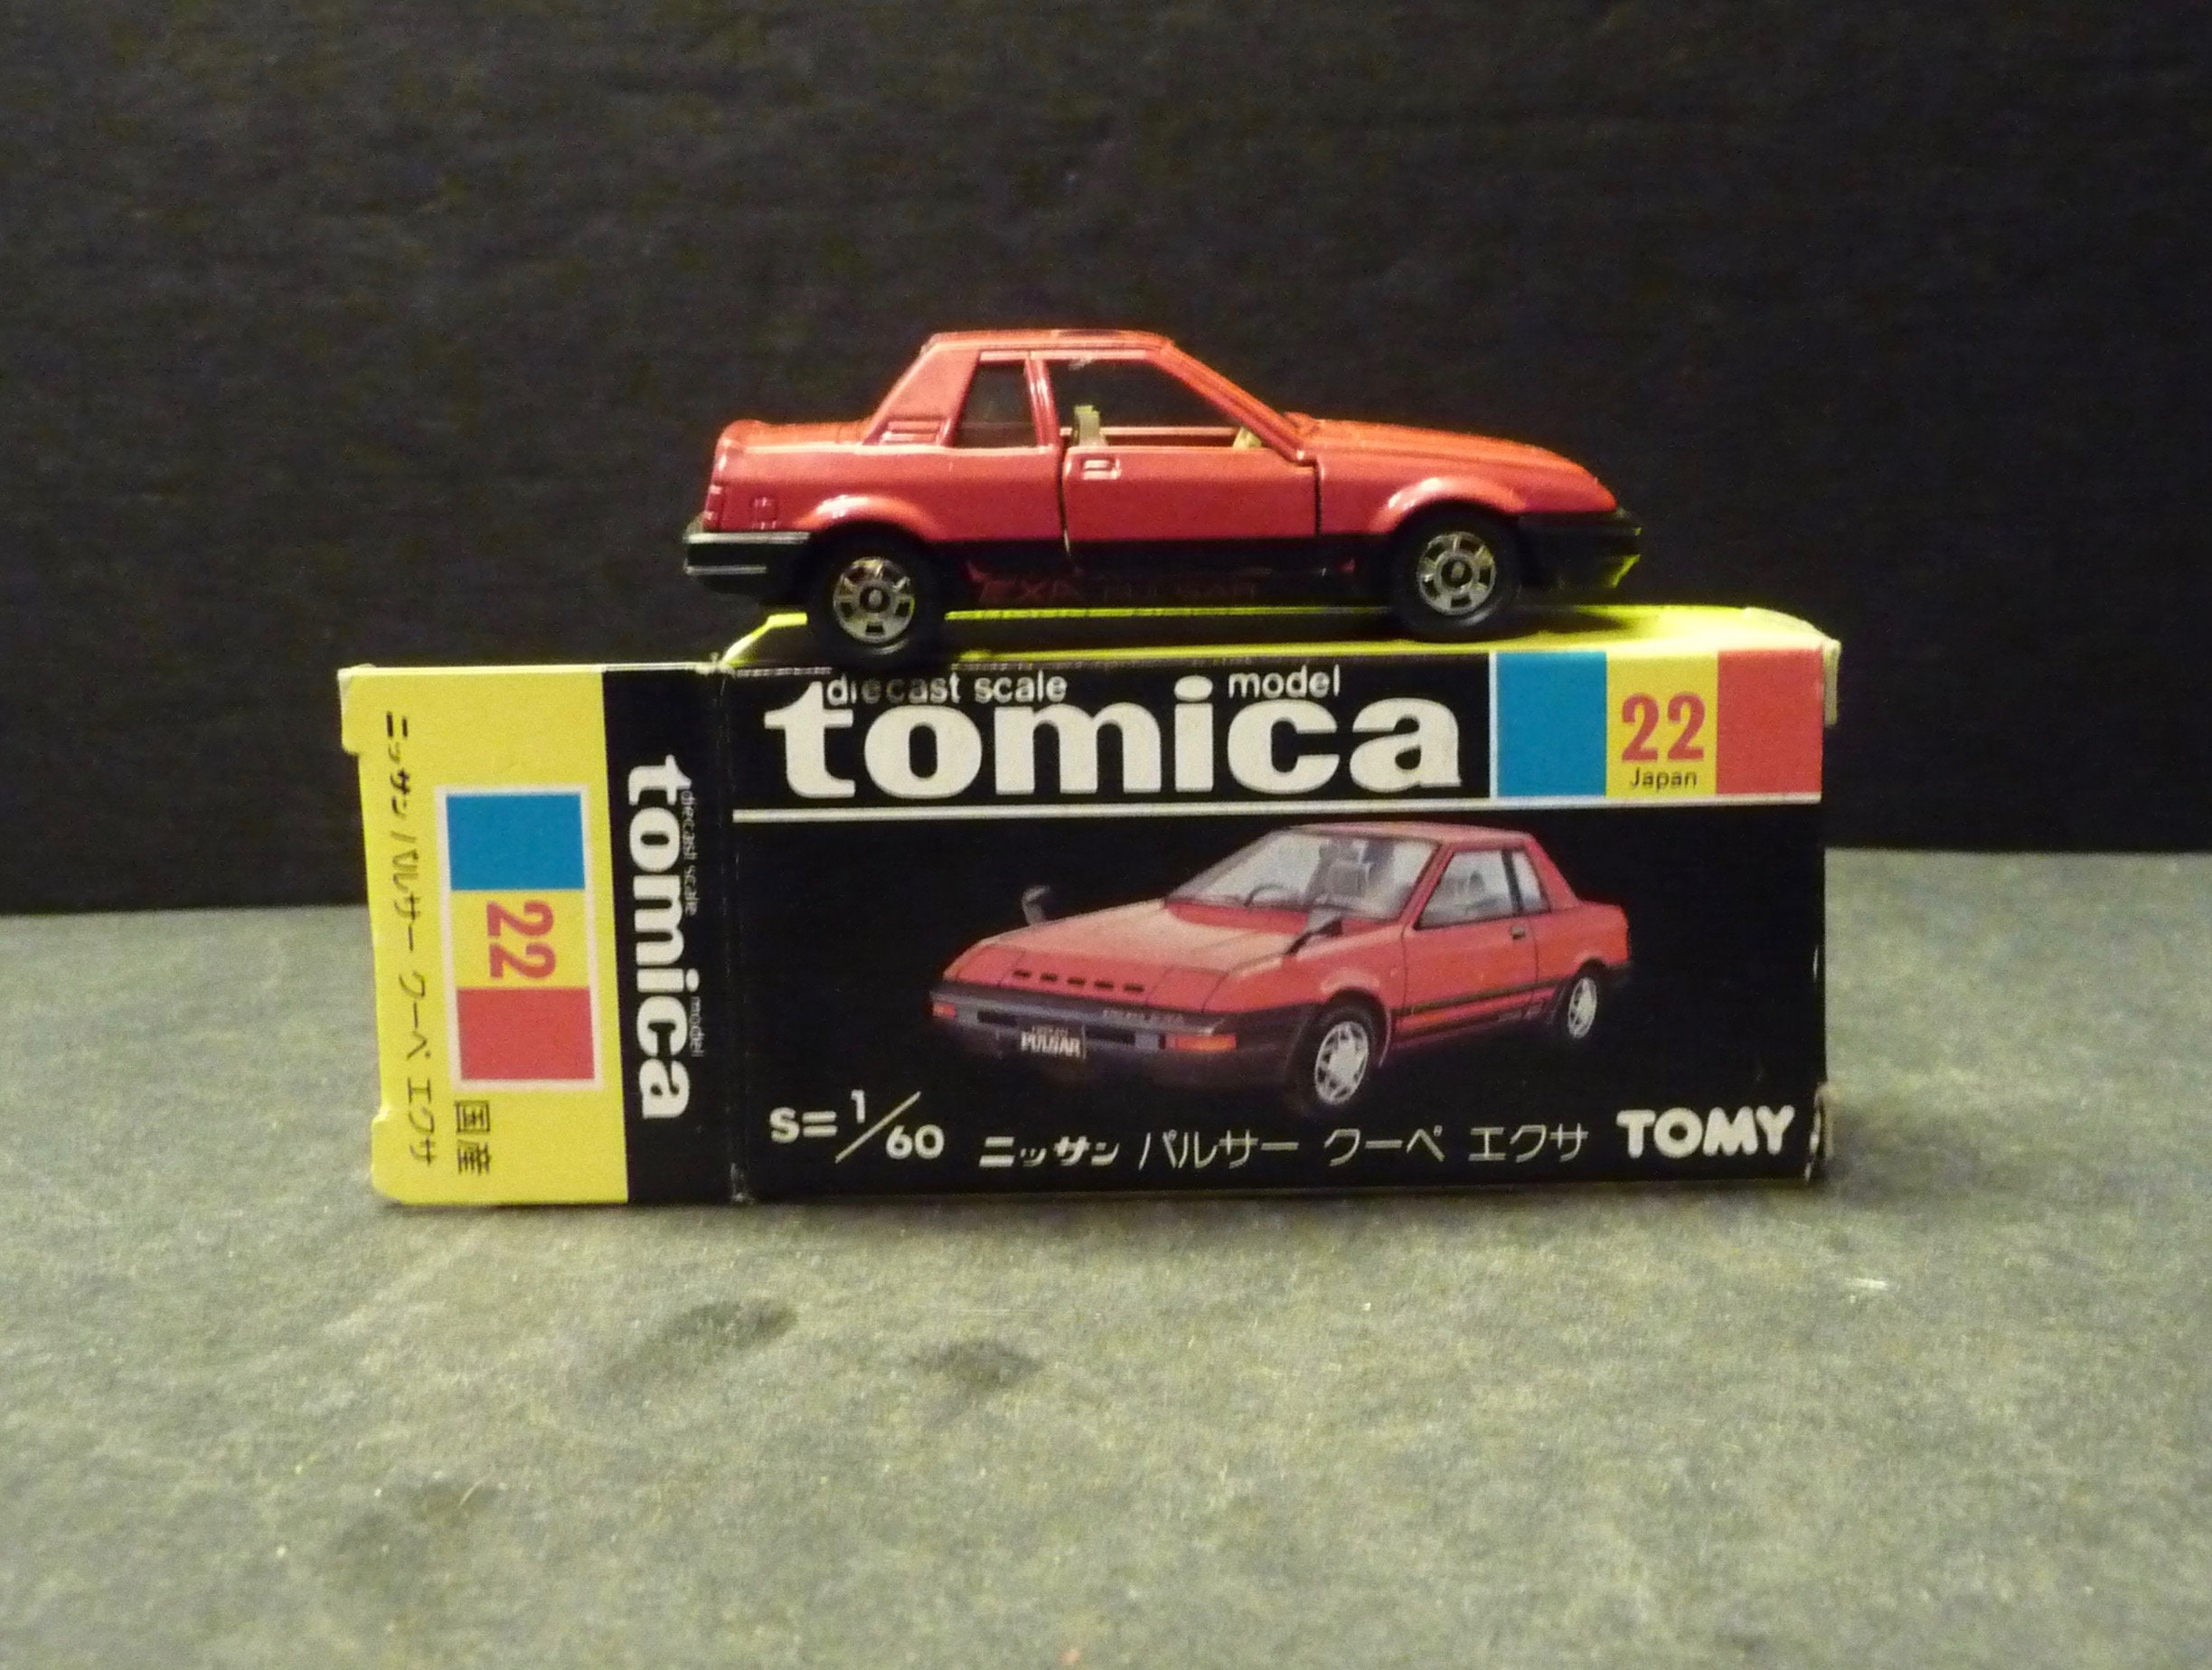 Tomica Nissan r Coupe EXA- 1/60- No. 22- Japan- Rare Tomica on nissan engine diagram, nissan suspension diagram, nissan battery diagram, nissan transaxle, nissan repair diagrams, nissan ignition resistor, nissan diesel conversion, nissan fuel system diagram, nissan brakes diagram, nissan radiator diagram, nissan distributor diagram, nissan schematic diagram, nissan main fuse, nissan electrical diagrams, nissan repair guide, nissan body diagram, nissan wire harness diagram, nissan fuel pump, nissan chassis diagram, nissan ignition key,